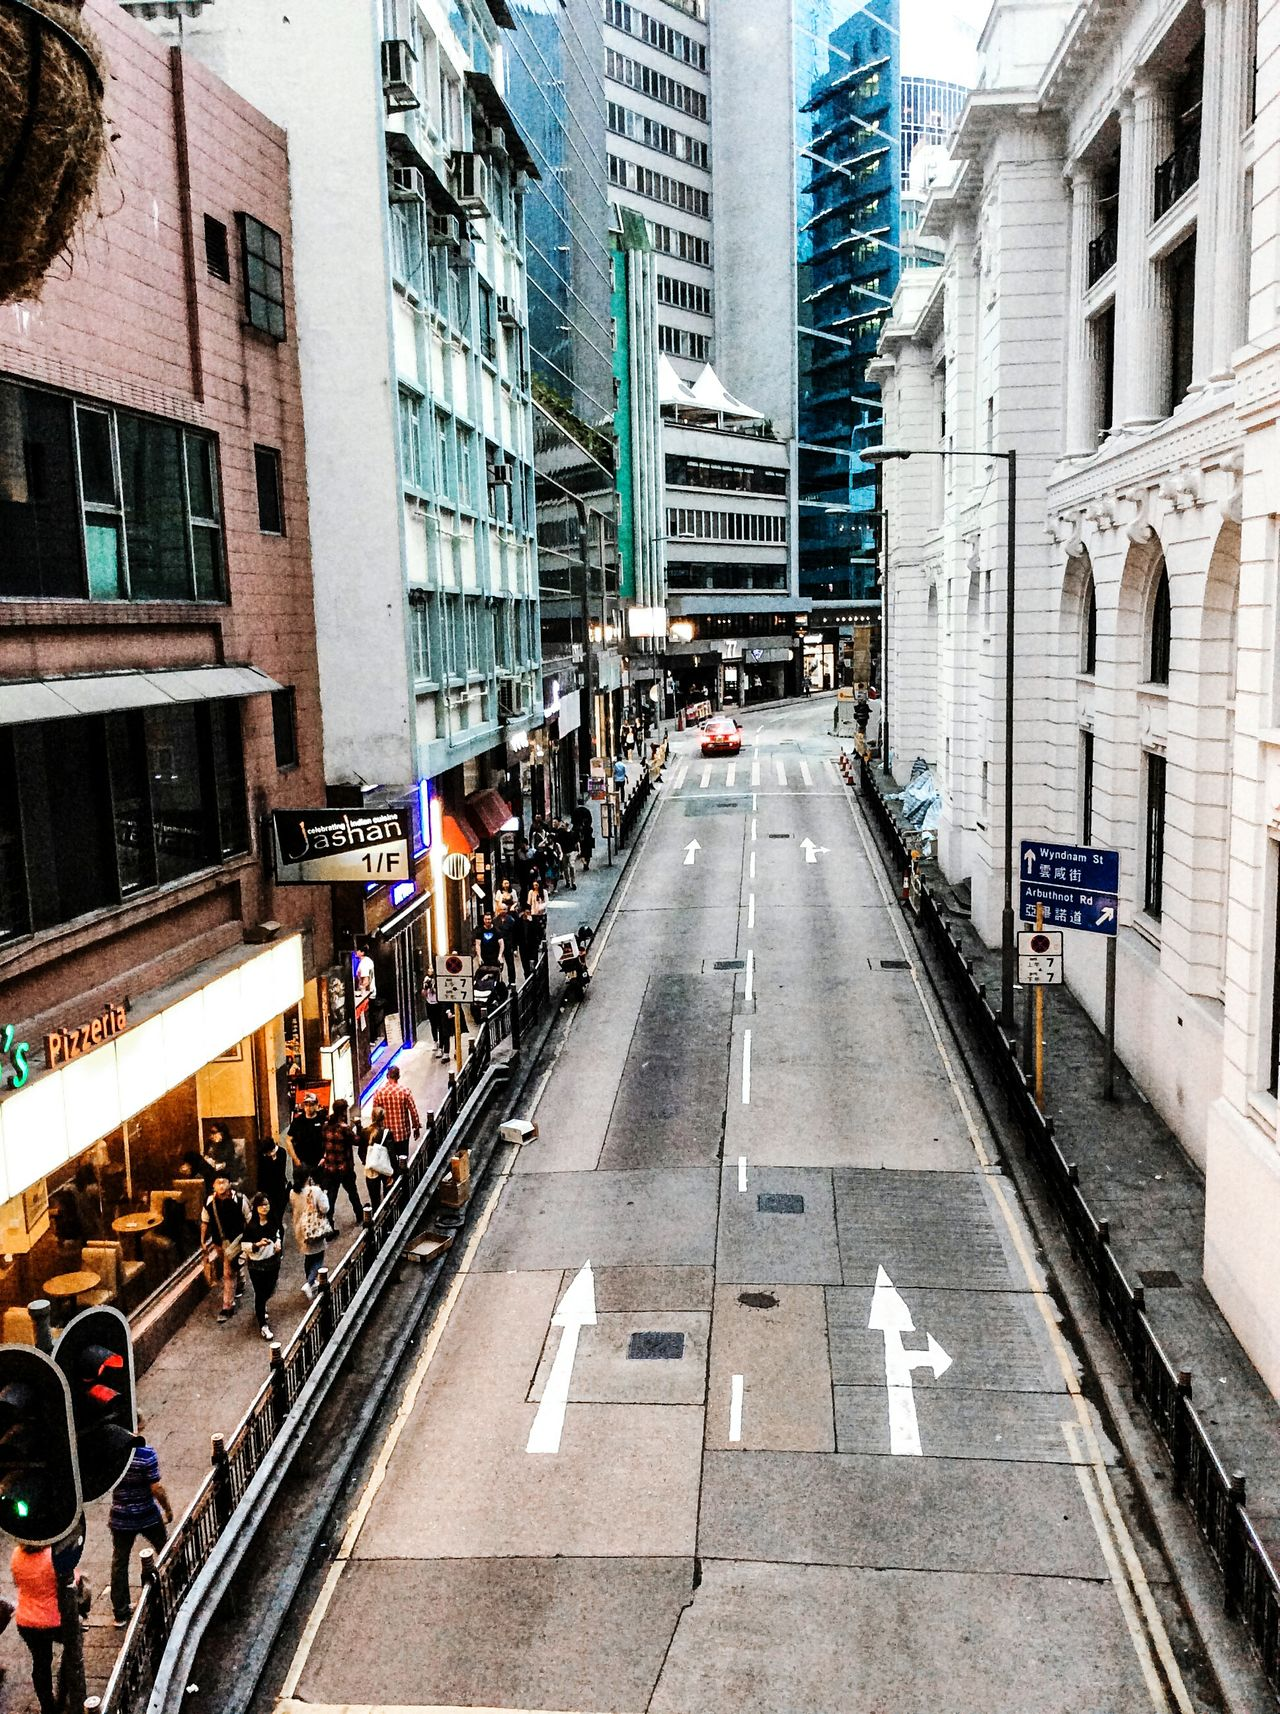 lost in hongkong Architecture Transportation Outdoors Road People Traveling EyeEm Gallery Eyeemmarket Photography Travel Photography Trip Journey Eye4photography  Eyeemphoto Eye4photography  EyeEm Photograph Cityphotography City Street HongKong Hong Kong Hongkong Photos Hong Kong City Hongkongcity Hongkongphotography